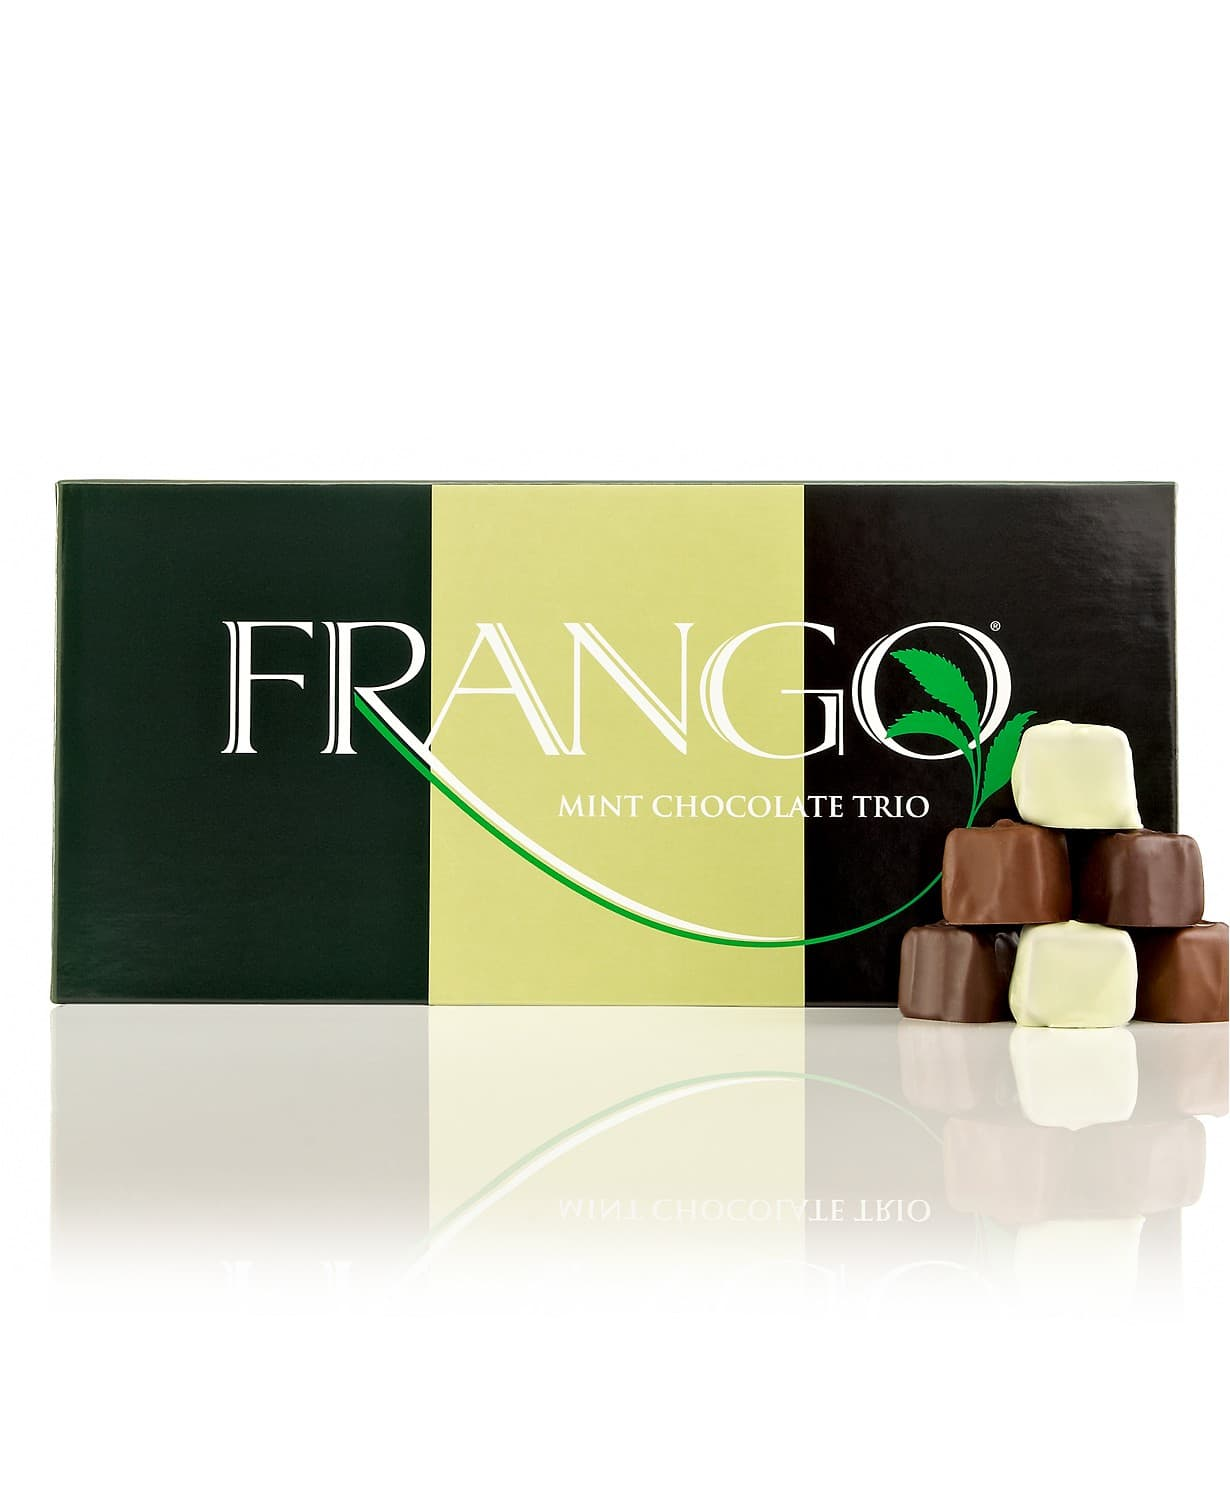 45-Piece/1-lb Frango Box of Chocolates (mint trio, milk toffee, dark, more) $8.39 each + free ship on $25+